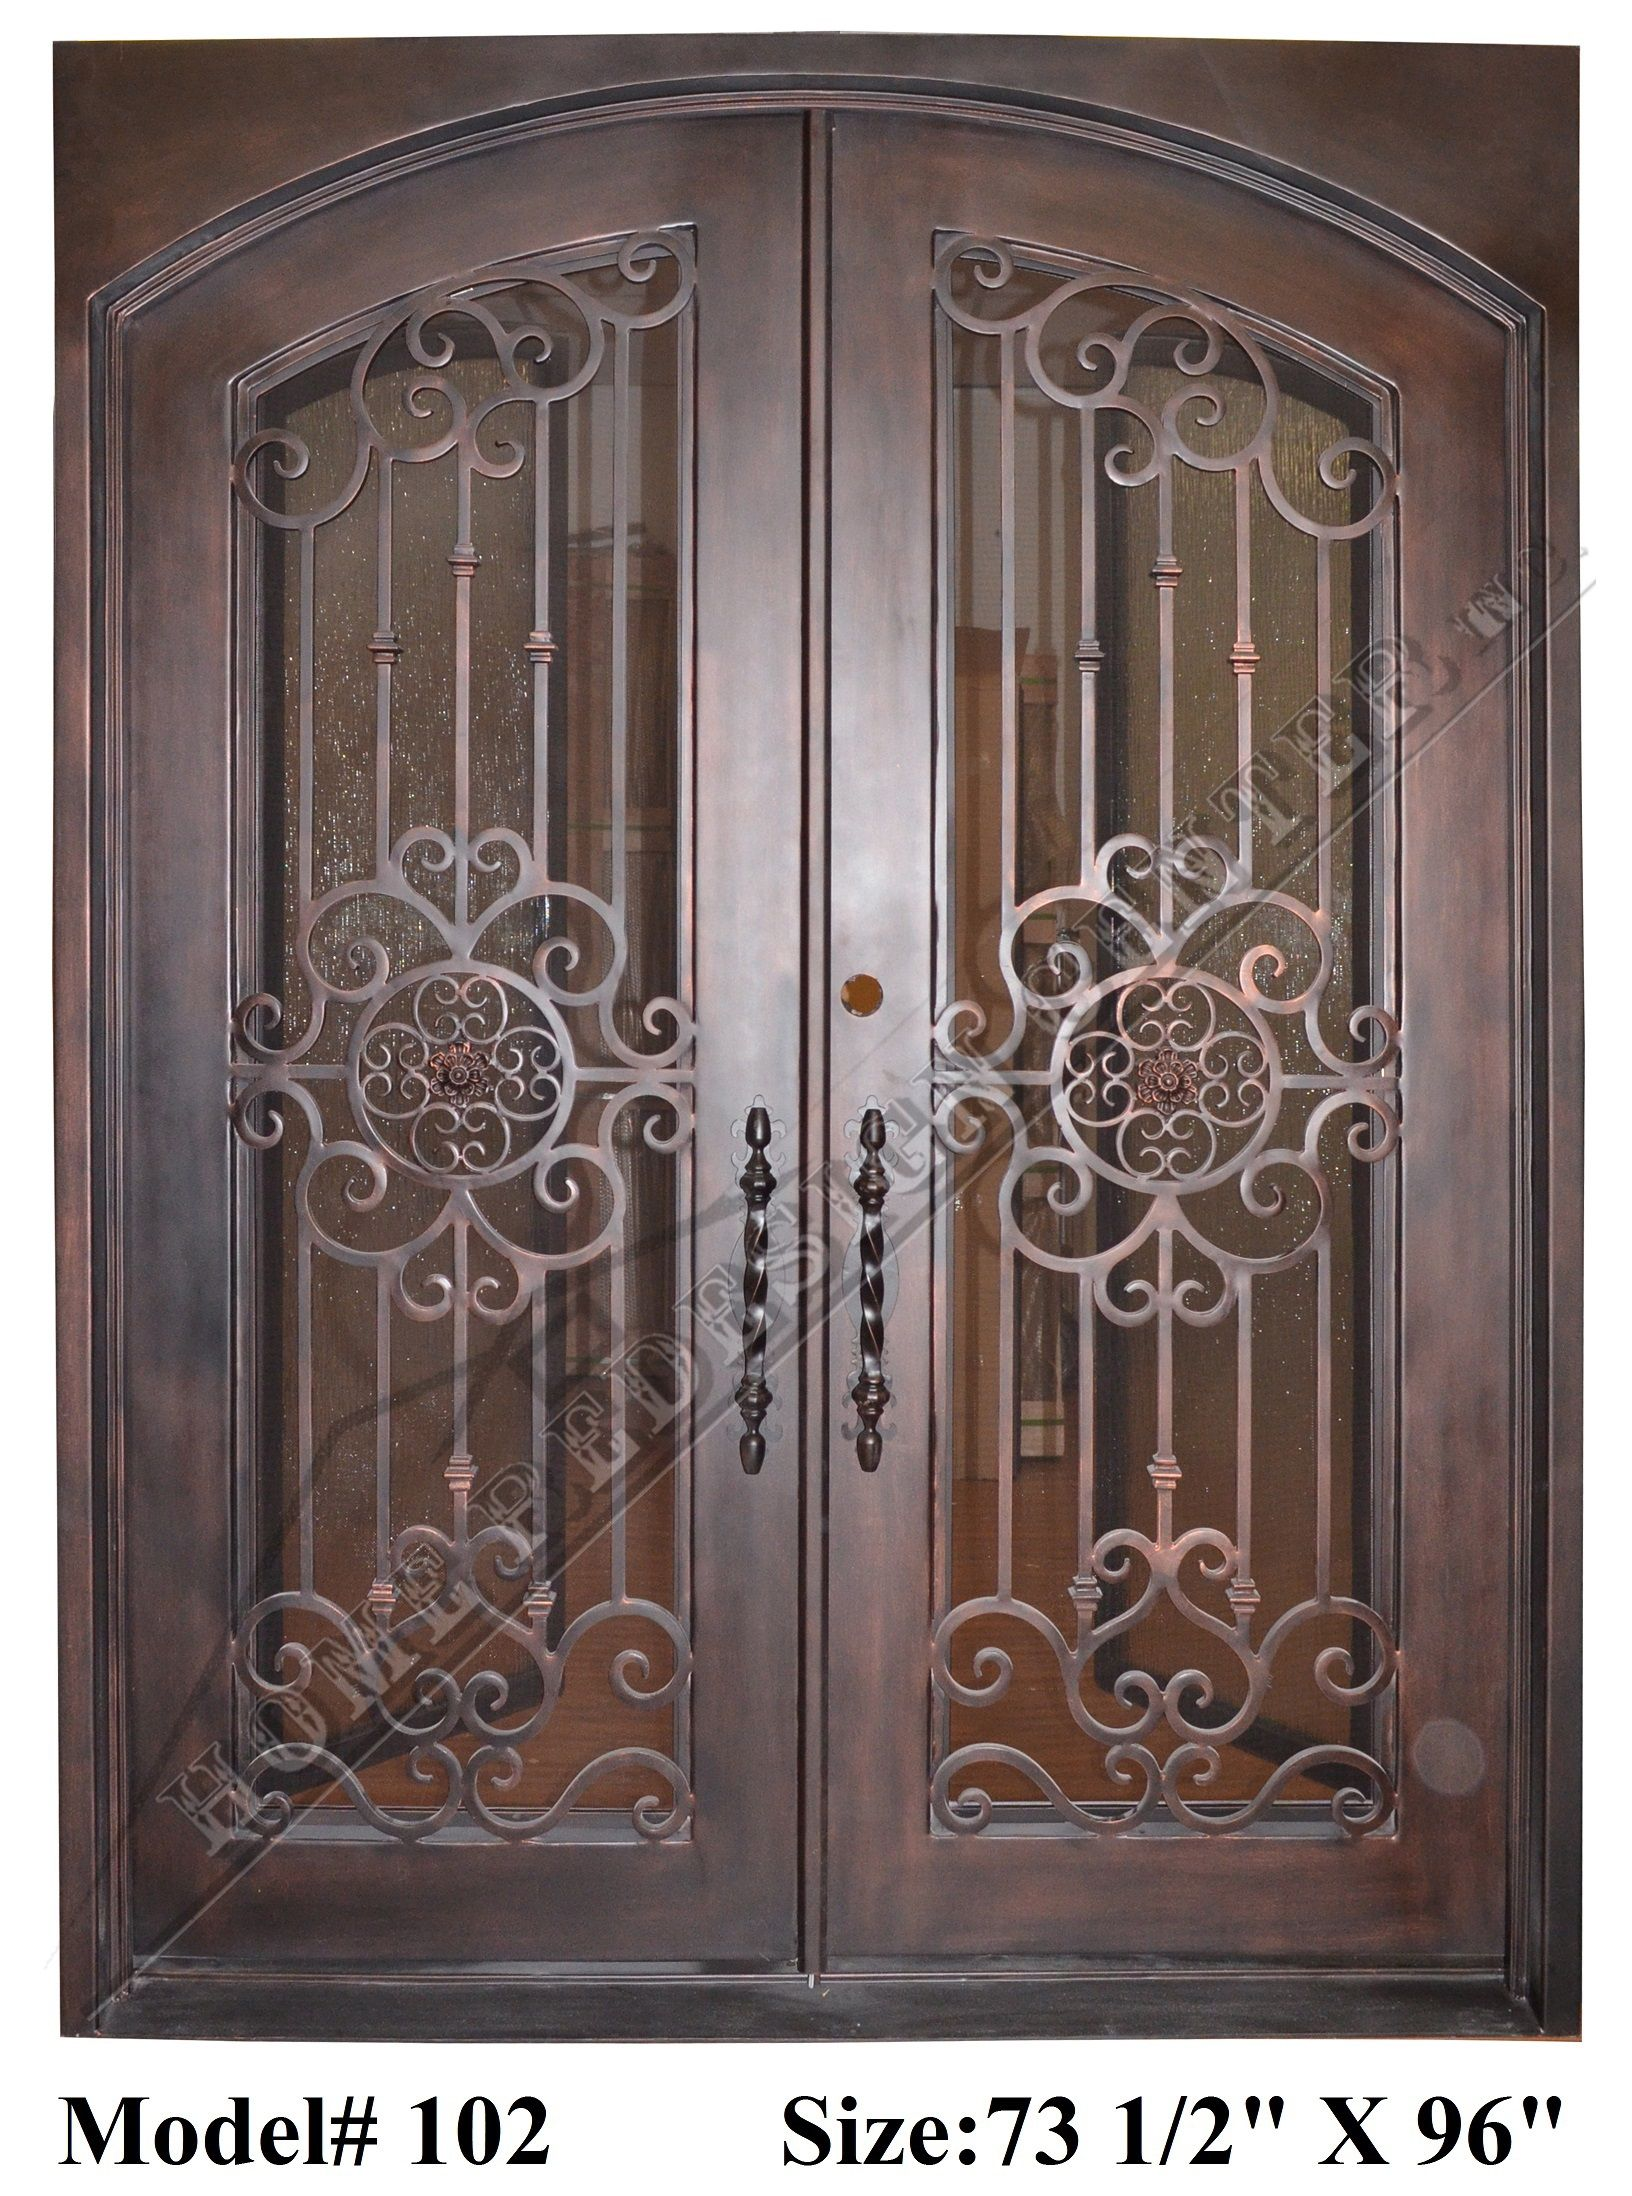 Our Doors Made Of 12 Gauge Steel With To Wrought Iron For Design Work Also Includes Wrought Iron Front Door Wrought Iron Entry Doors Wrought Iron Doors